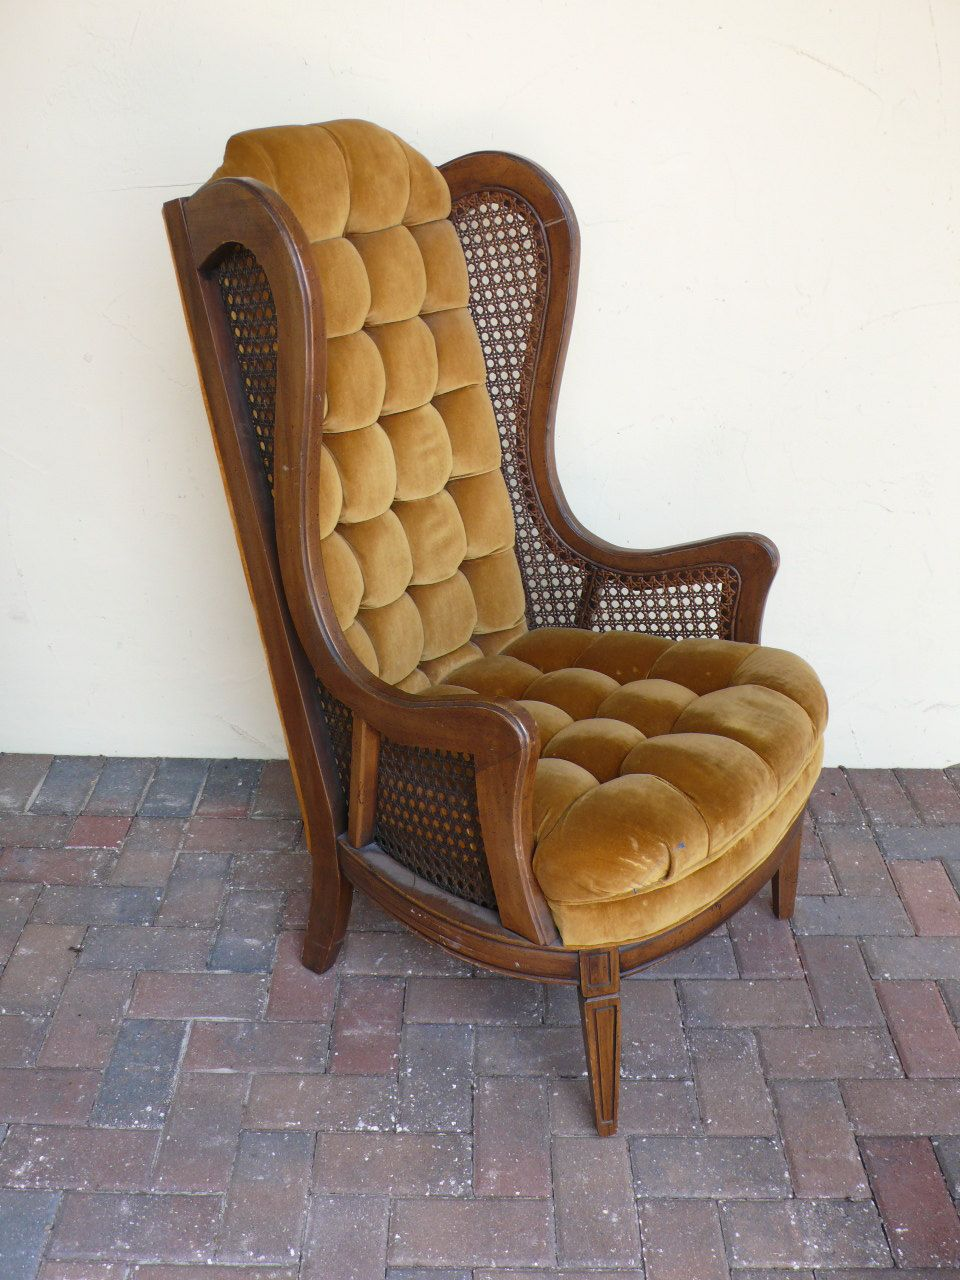 Vintage High Back Cane Side Wing Arm Chair With Wood Frame Shown